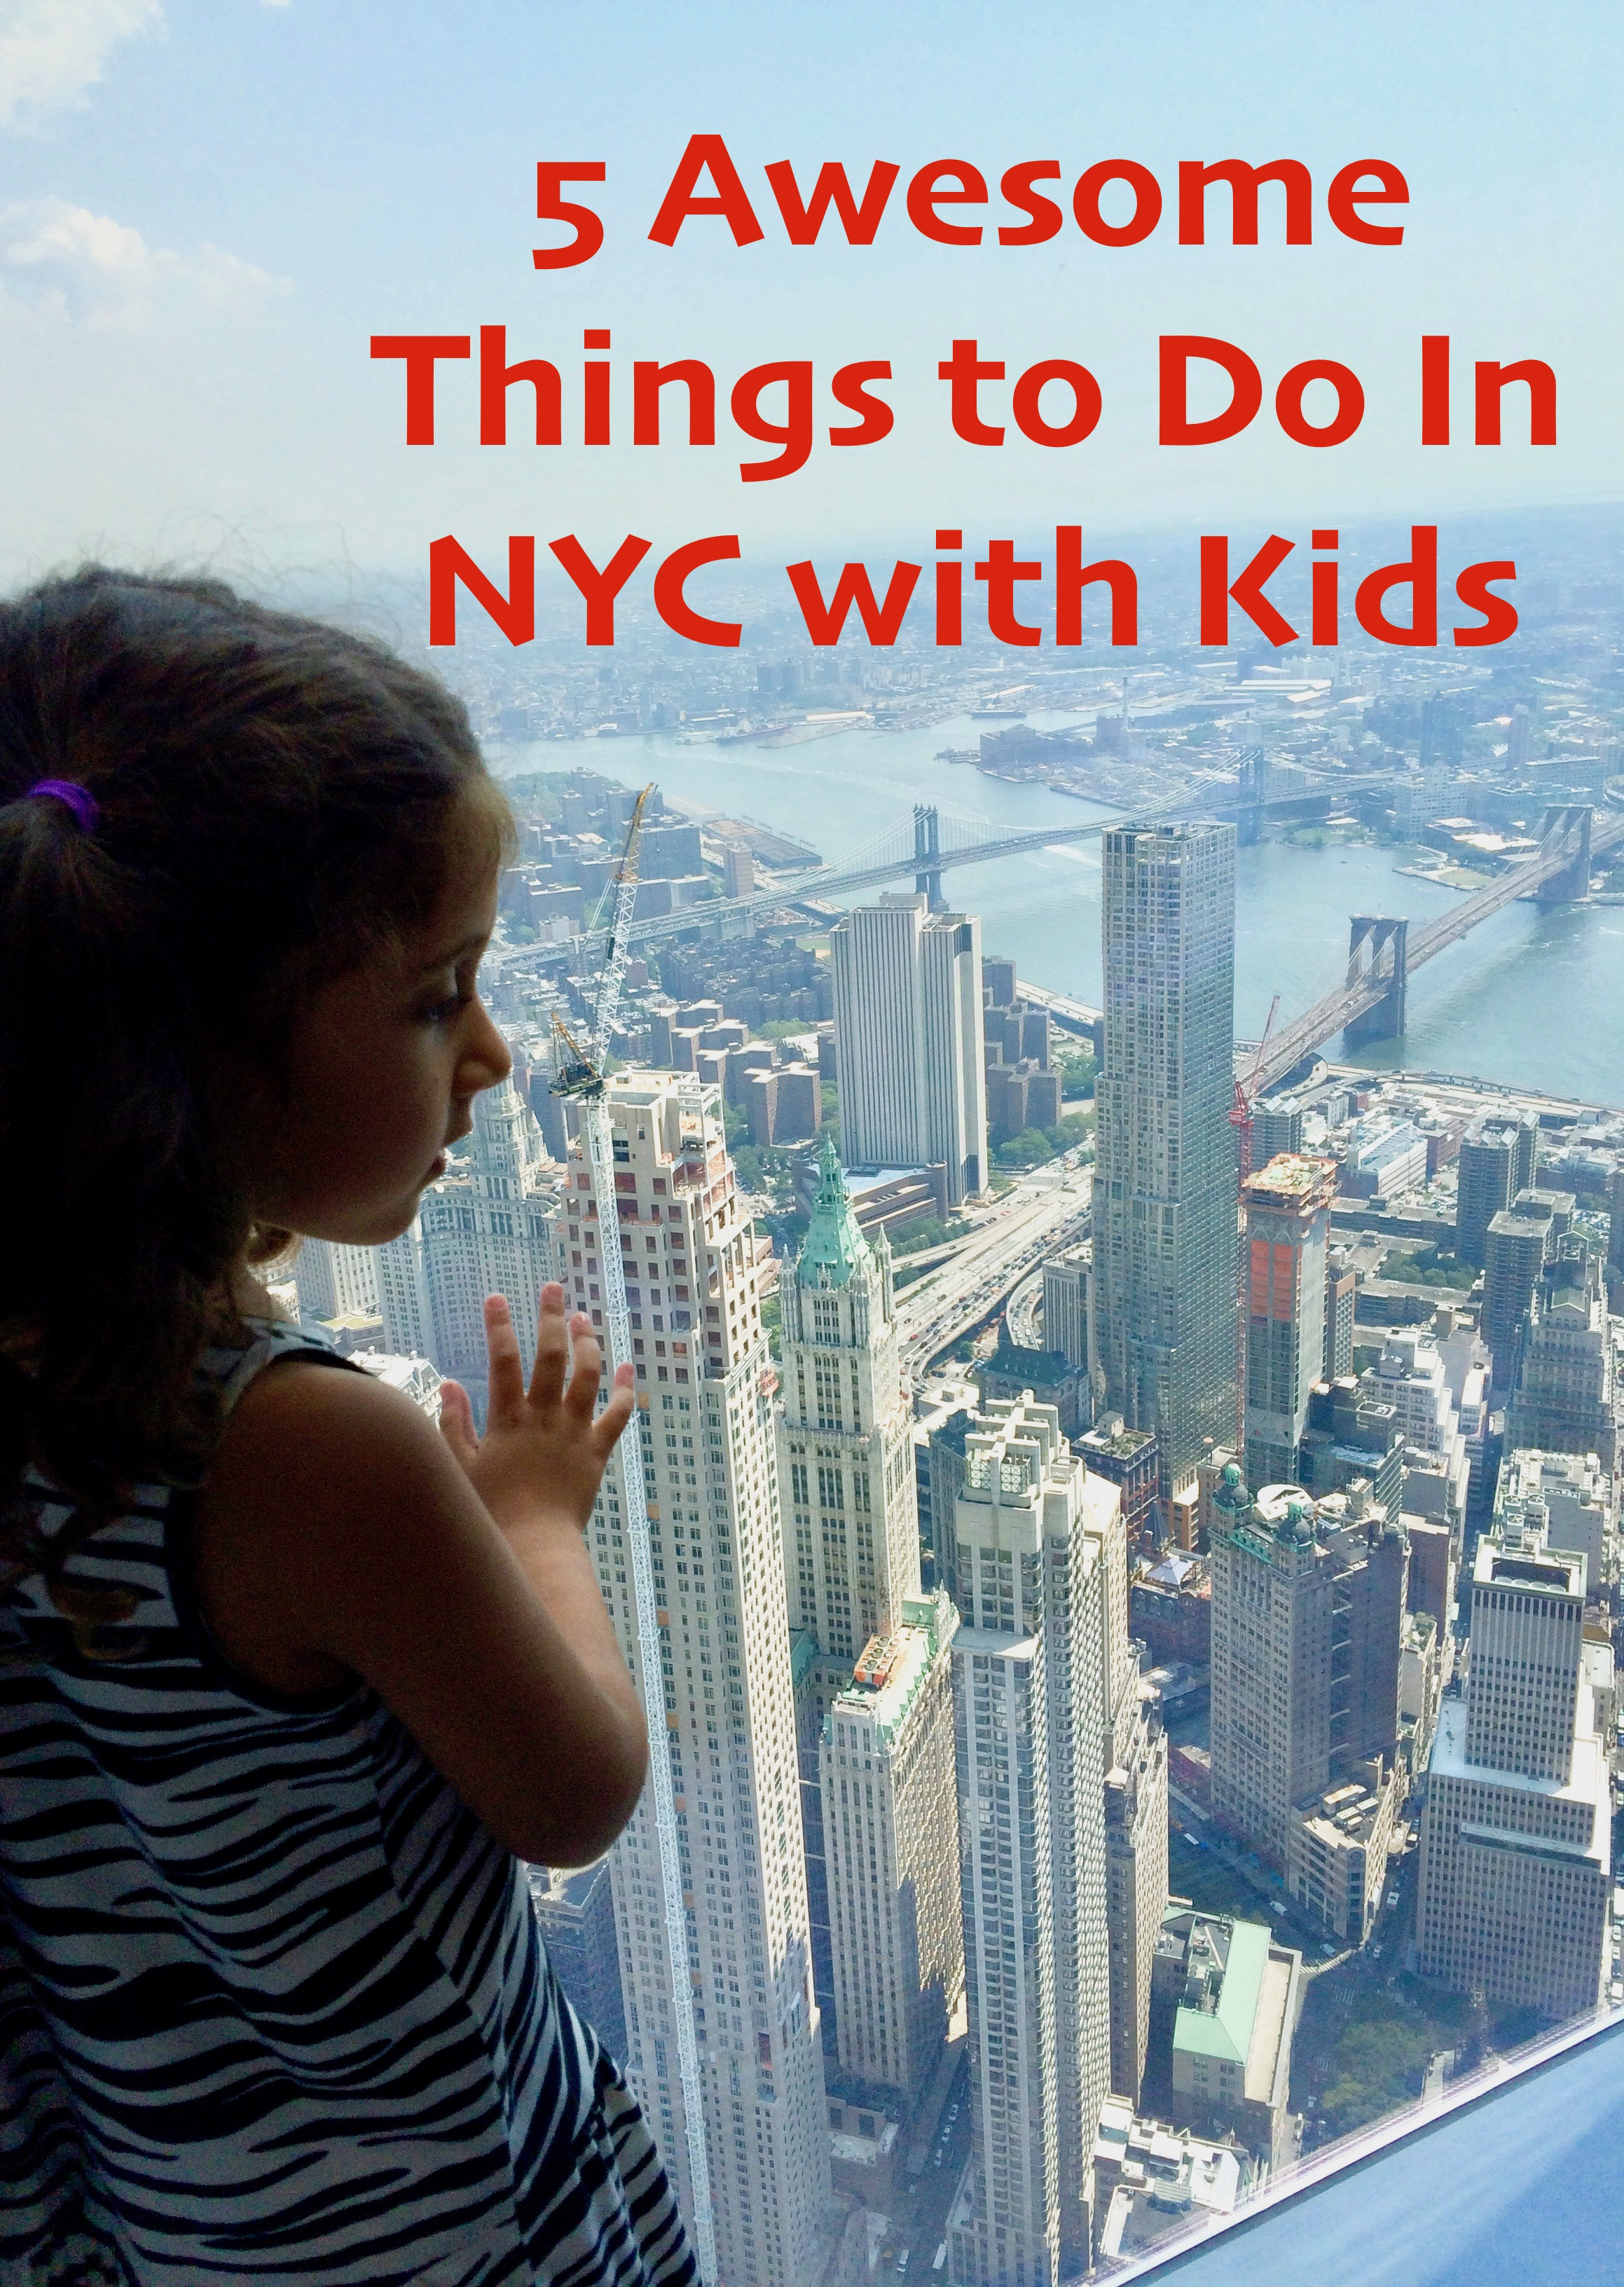 5 Awesome Things To Do In NYC With Kids